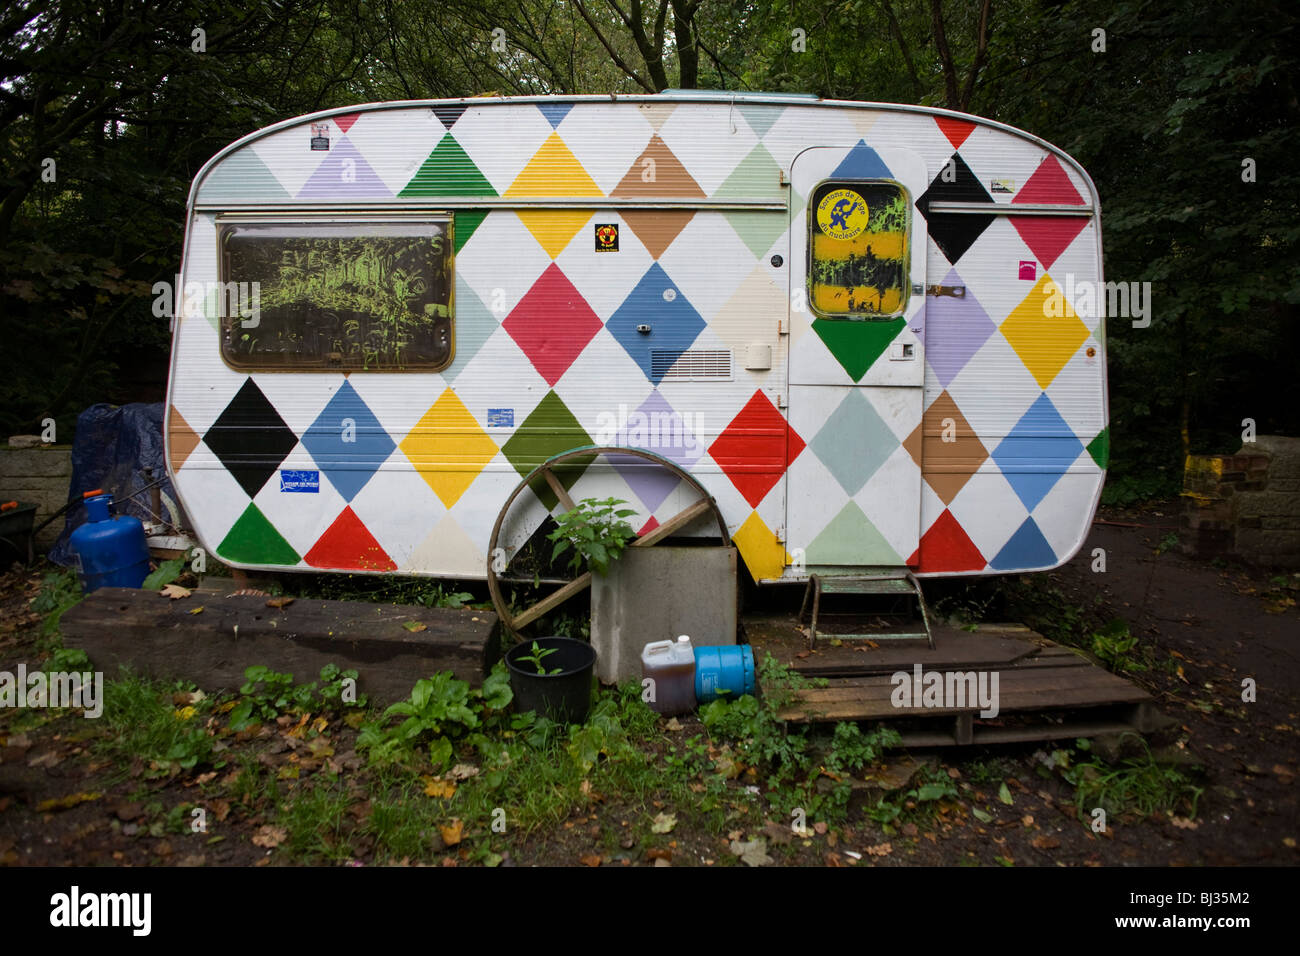 A customized harlequin-patterned caravan sits in the damp woods at the Faslane Peace Camp - Stock Image